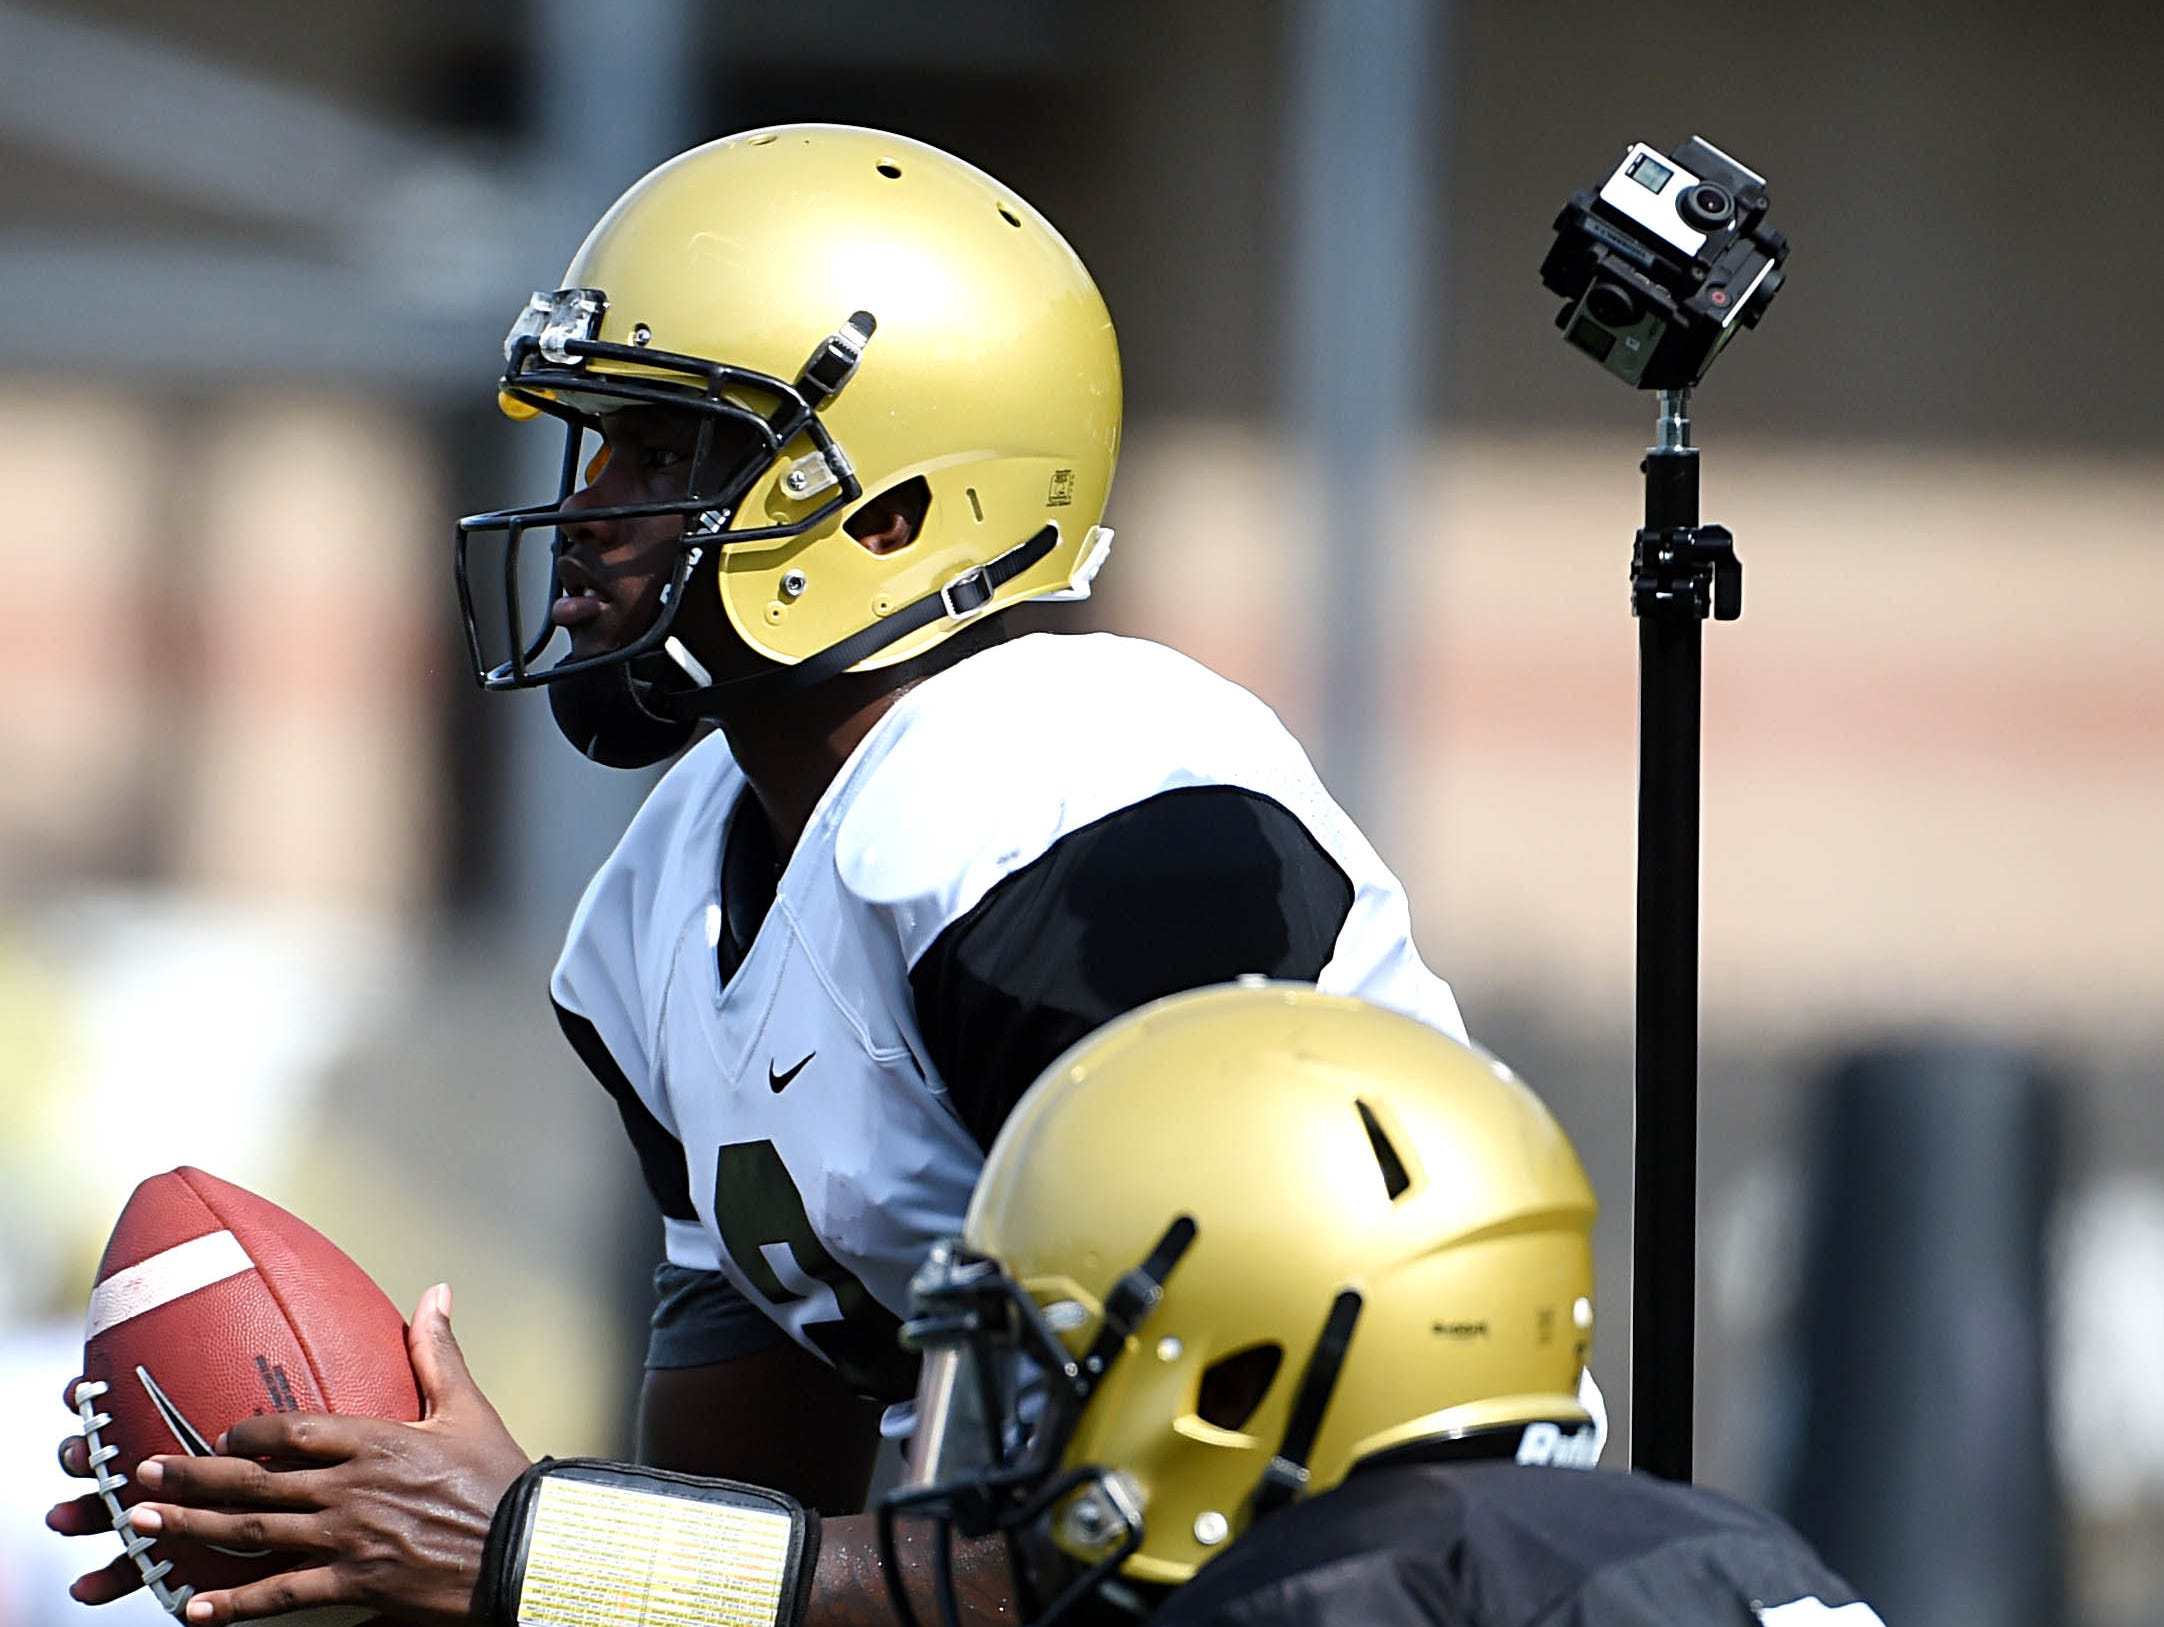 Six GoPro cameras mounted together records video of Vanderbilt QB Johnny McCrary (2) during practice on Monday August 10, 2015. The cameras are capturing video 360°.